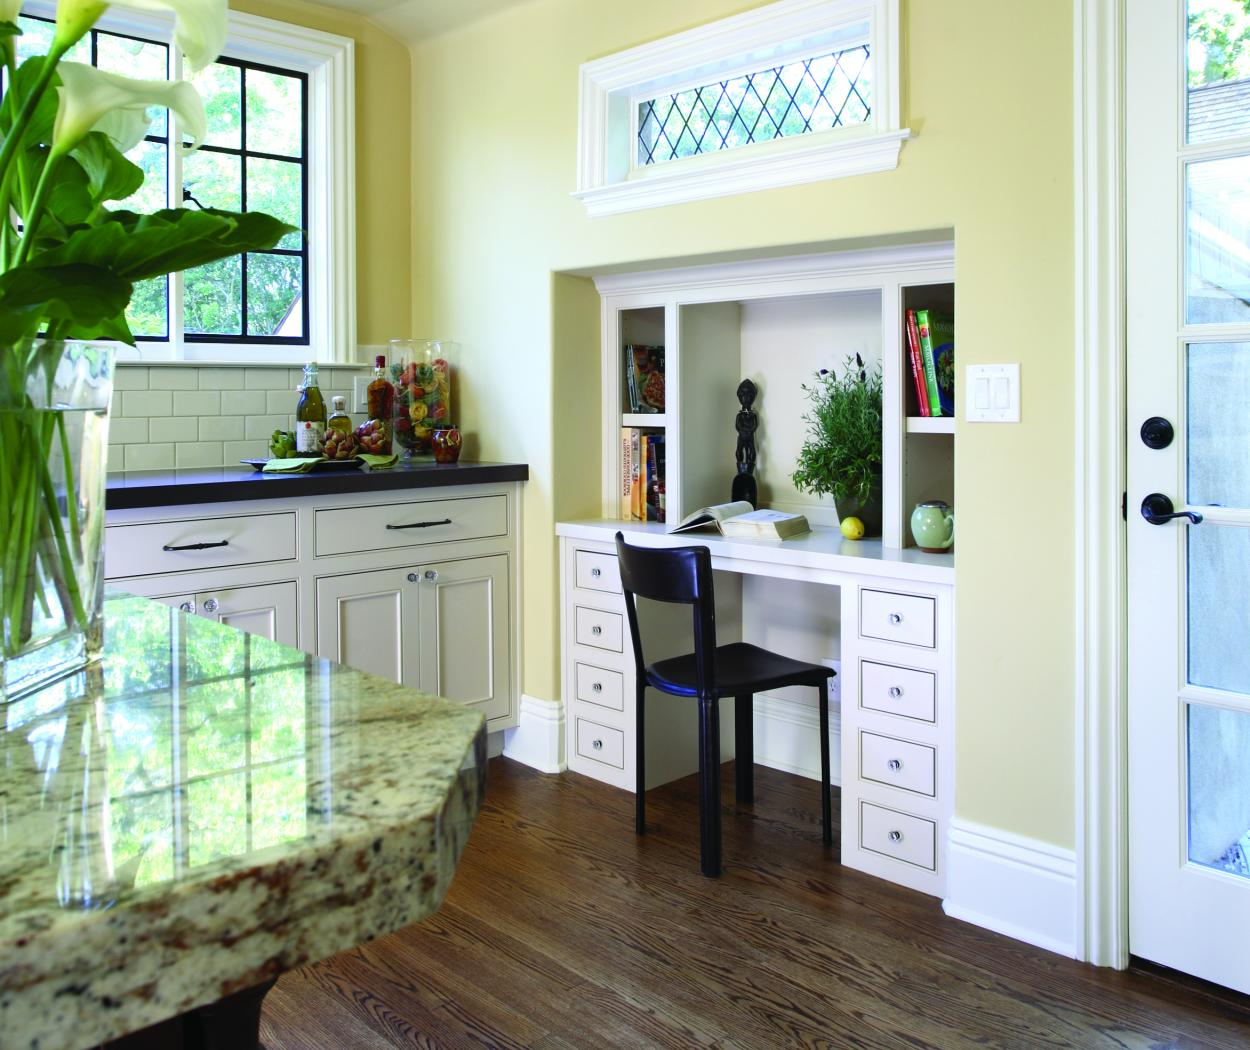 White Transitional Built-In Desk with Open Shelves and Diamond Shaped Knobs